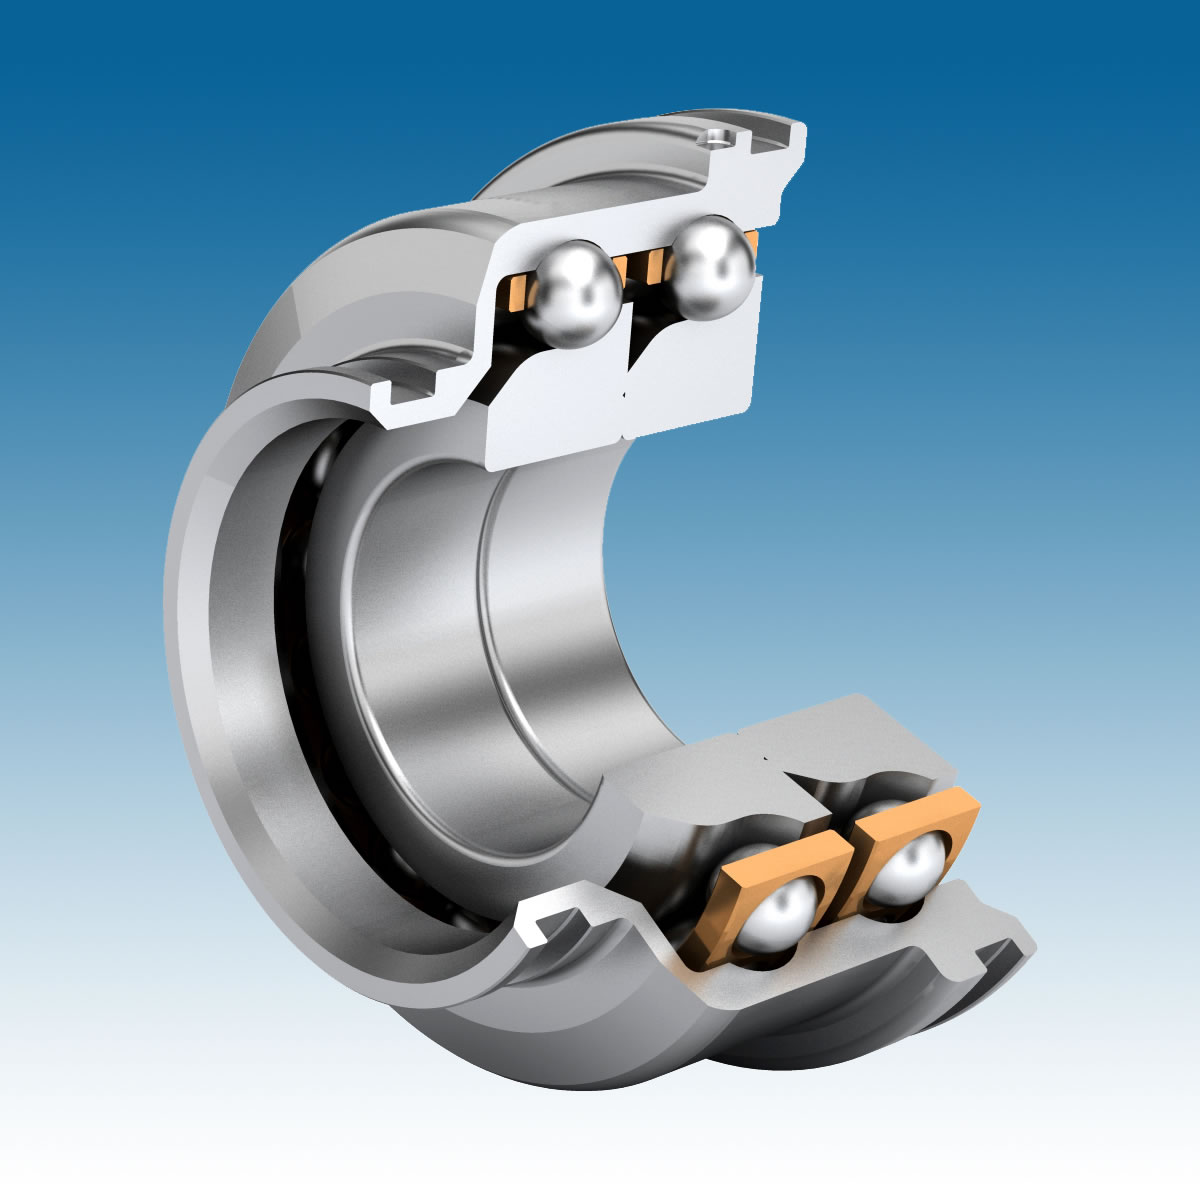 Cleanliness for extended bearing life